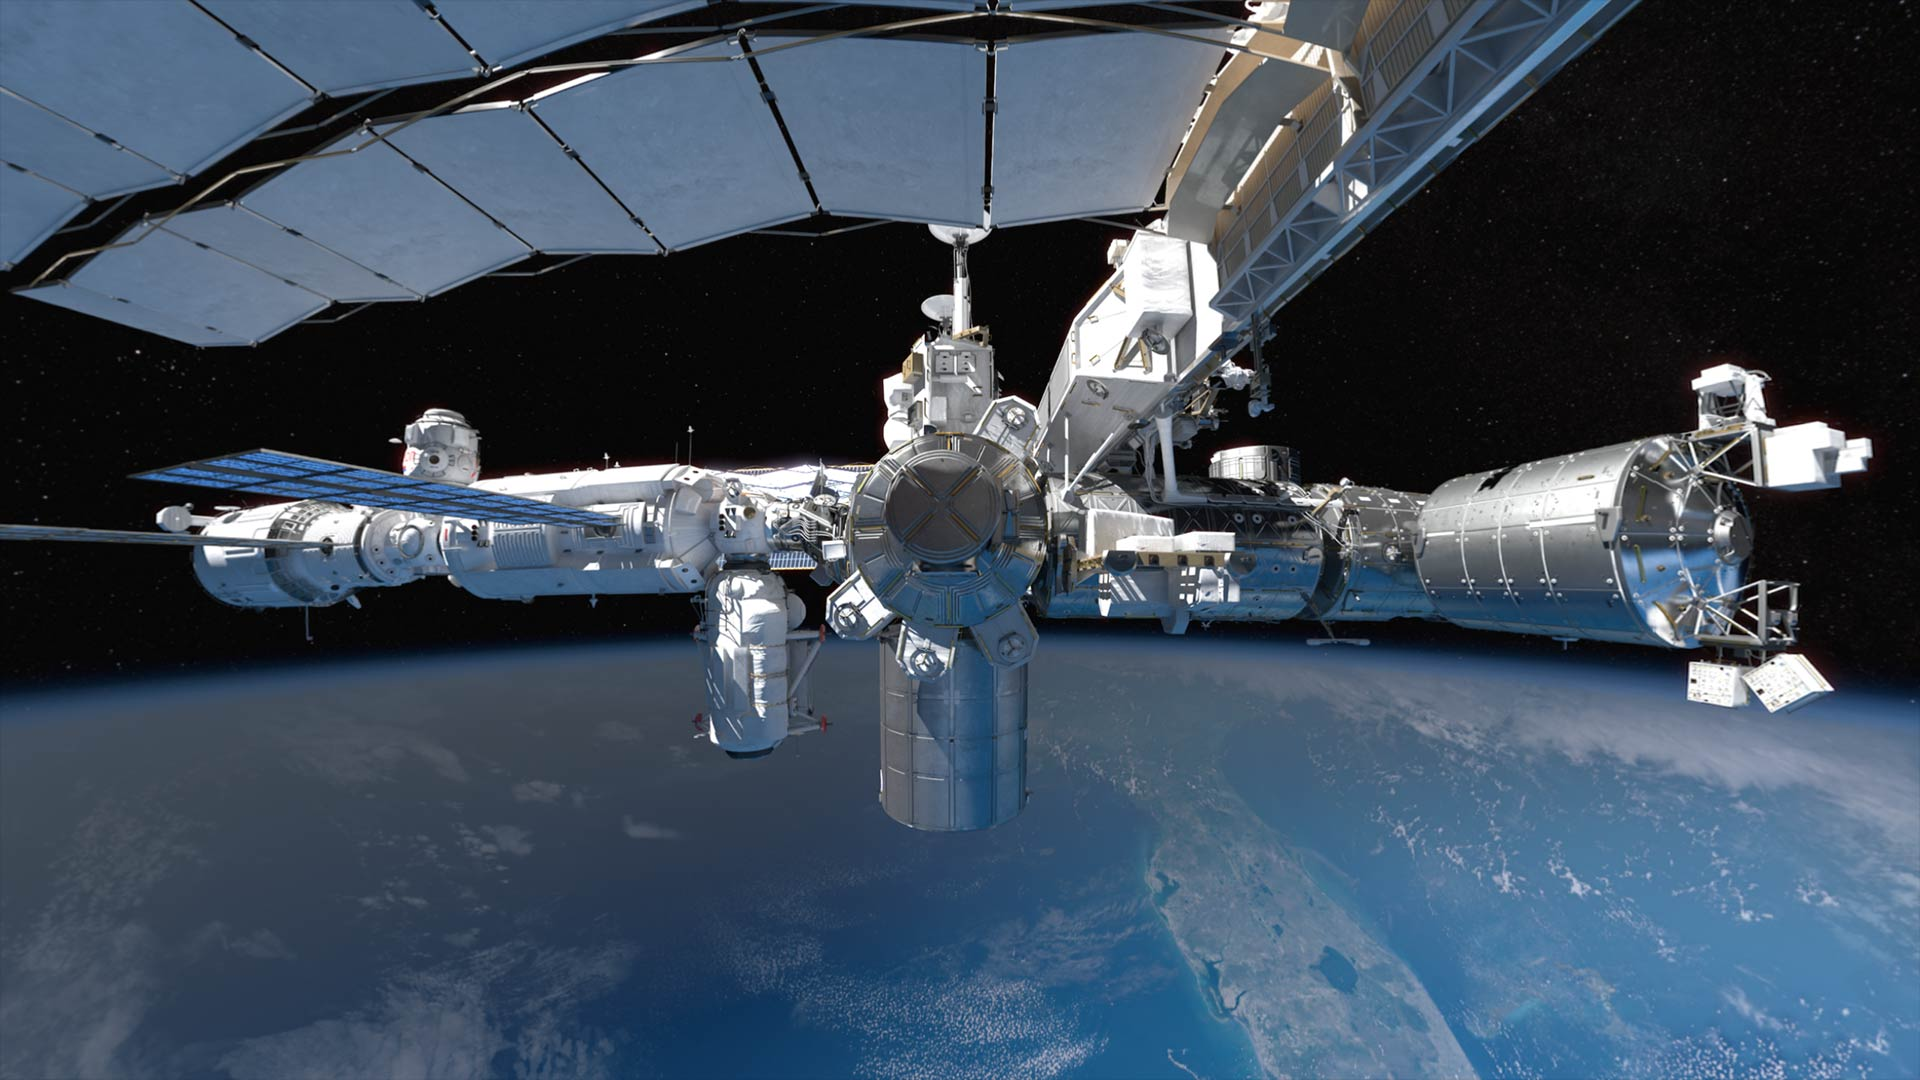 Exterior view of the International Space Station